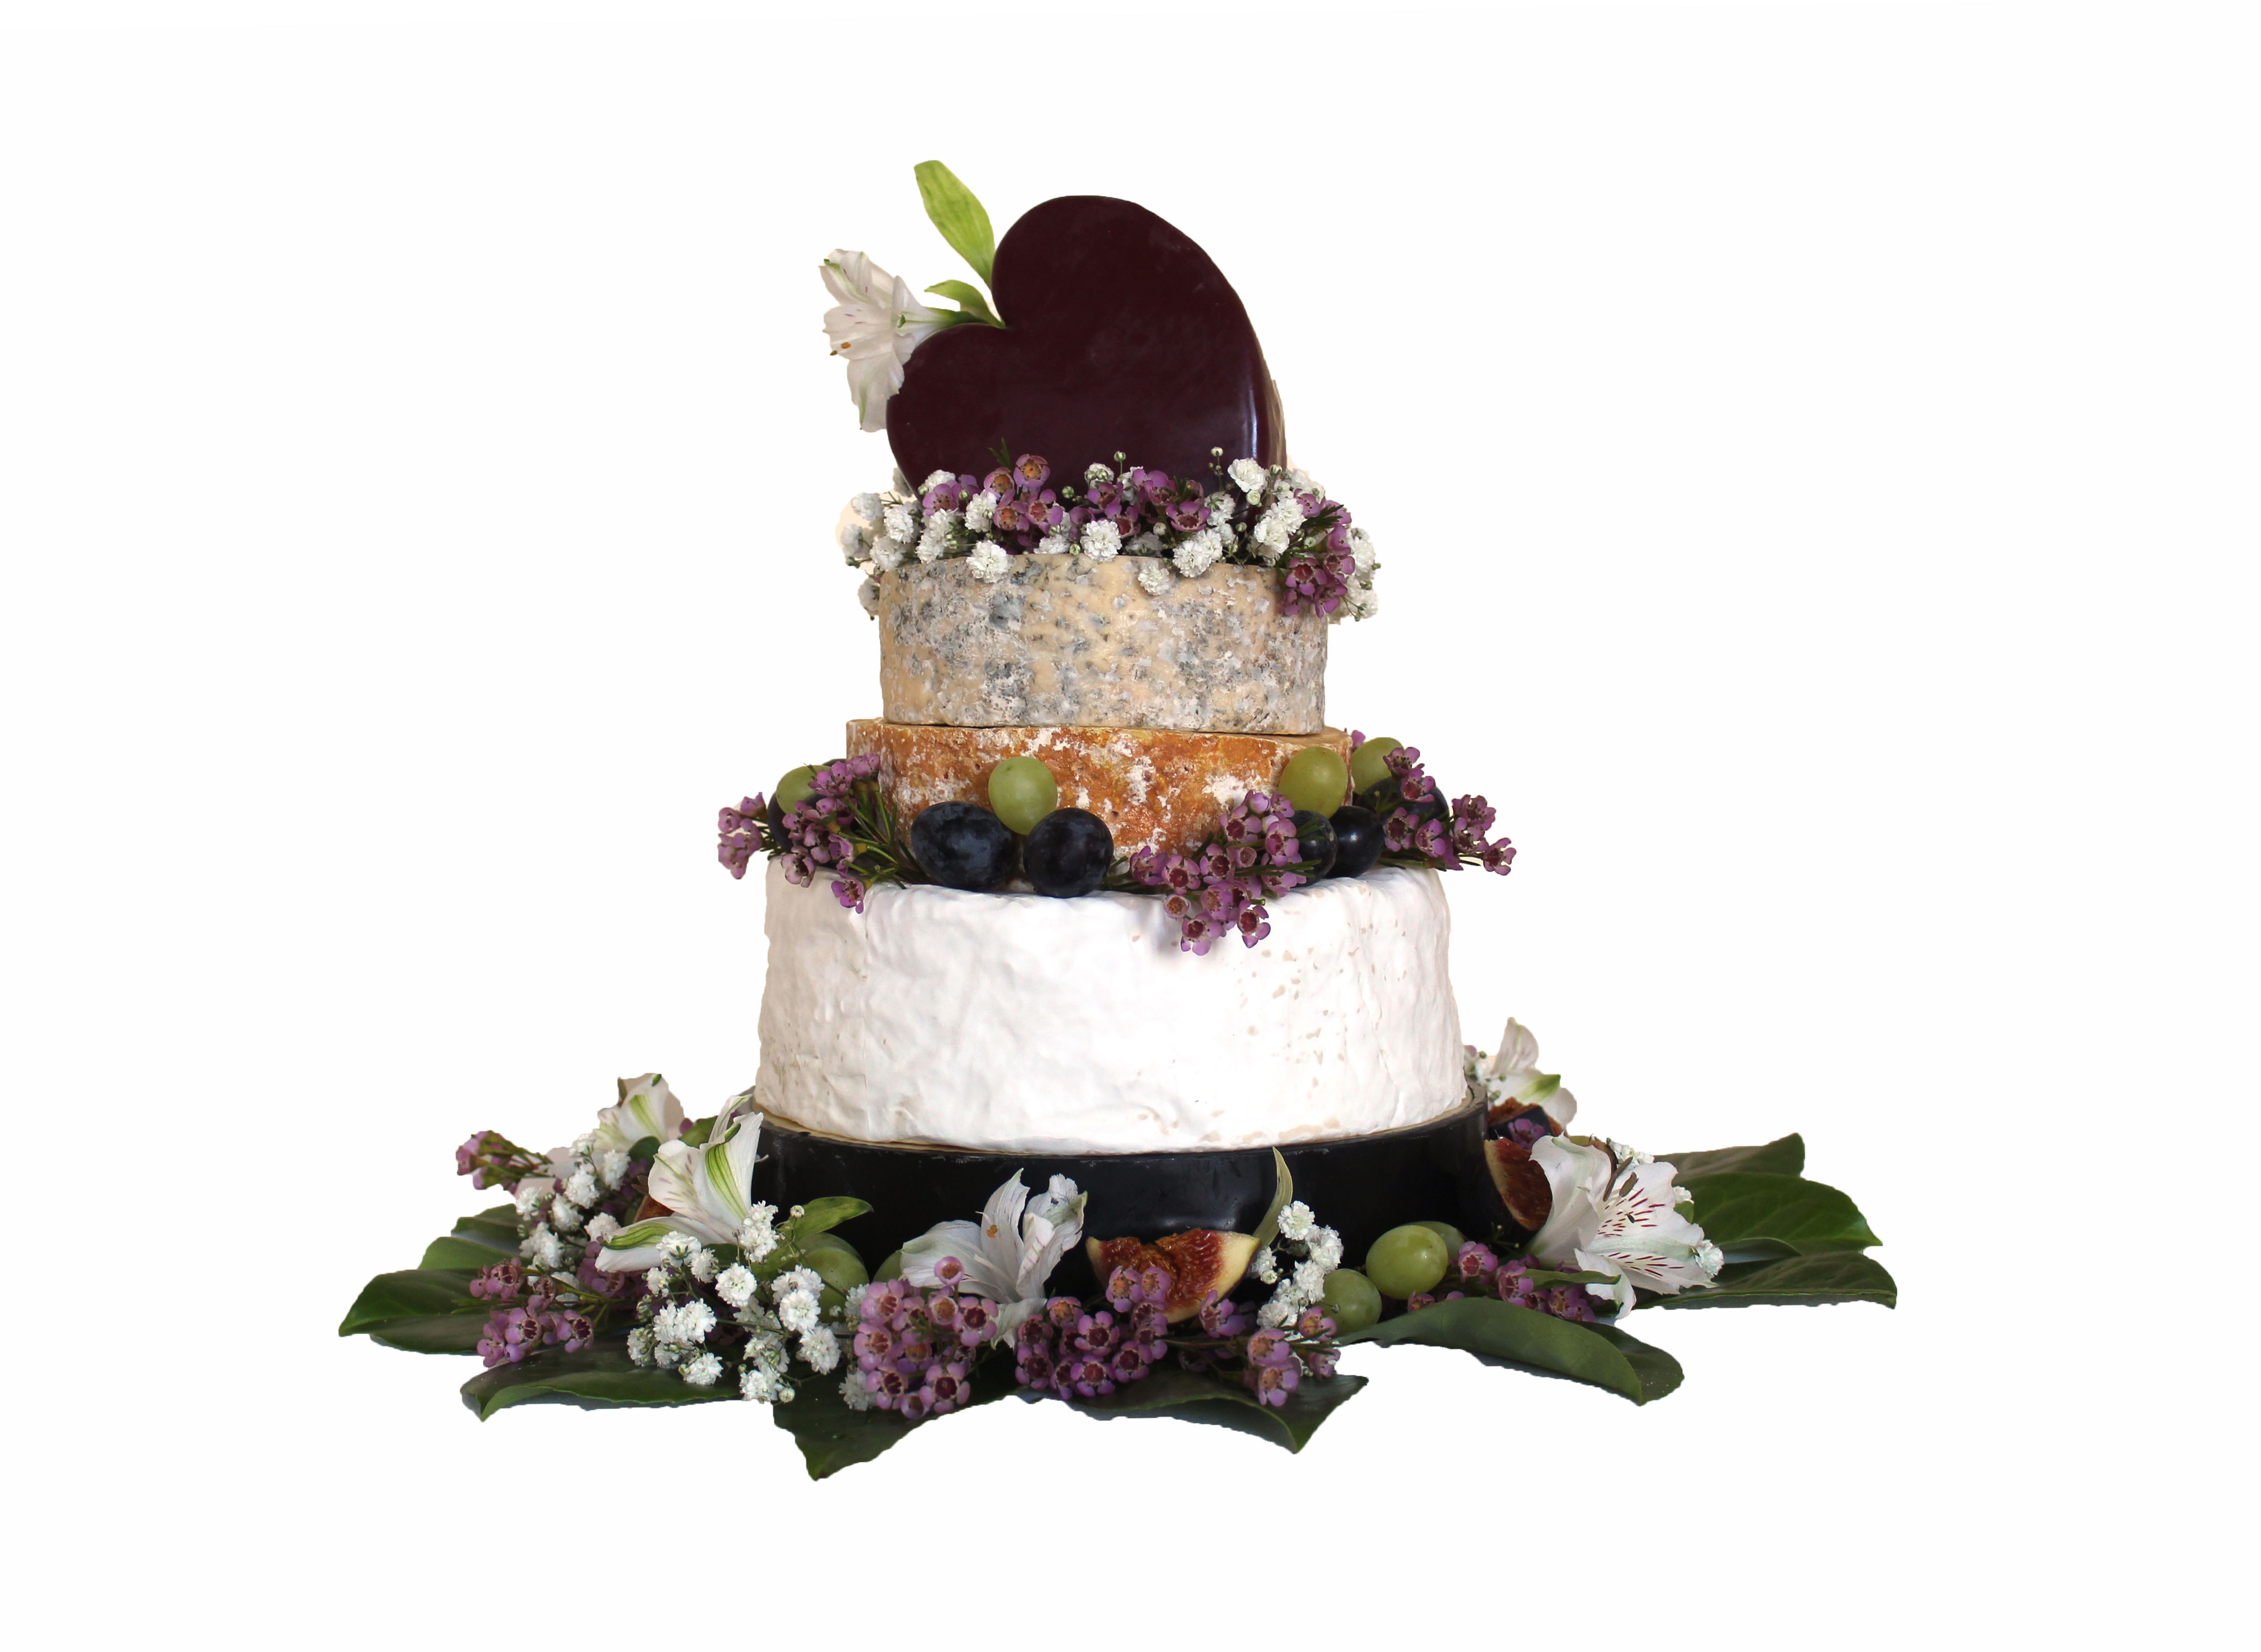 Otters Cheese Celebration Cake Example 13 | Otters Fine Foods